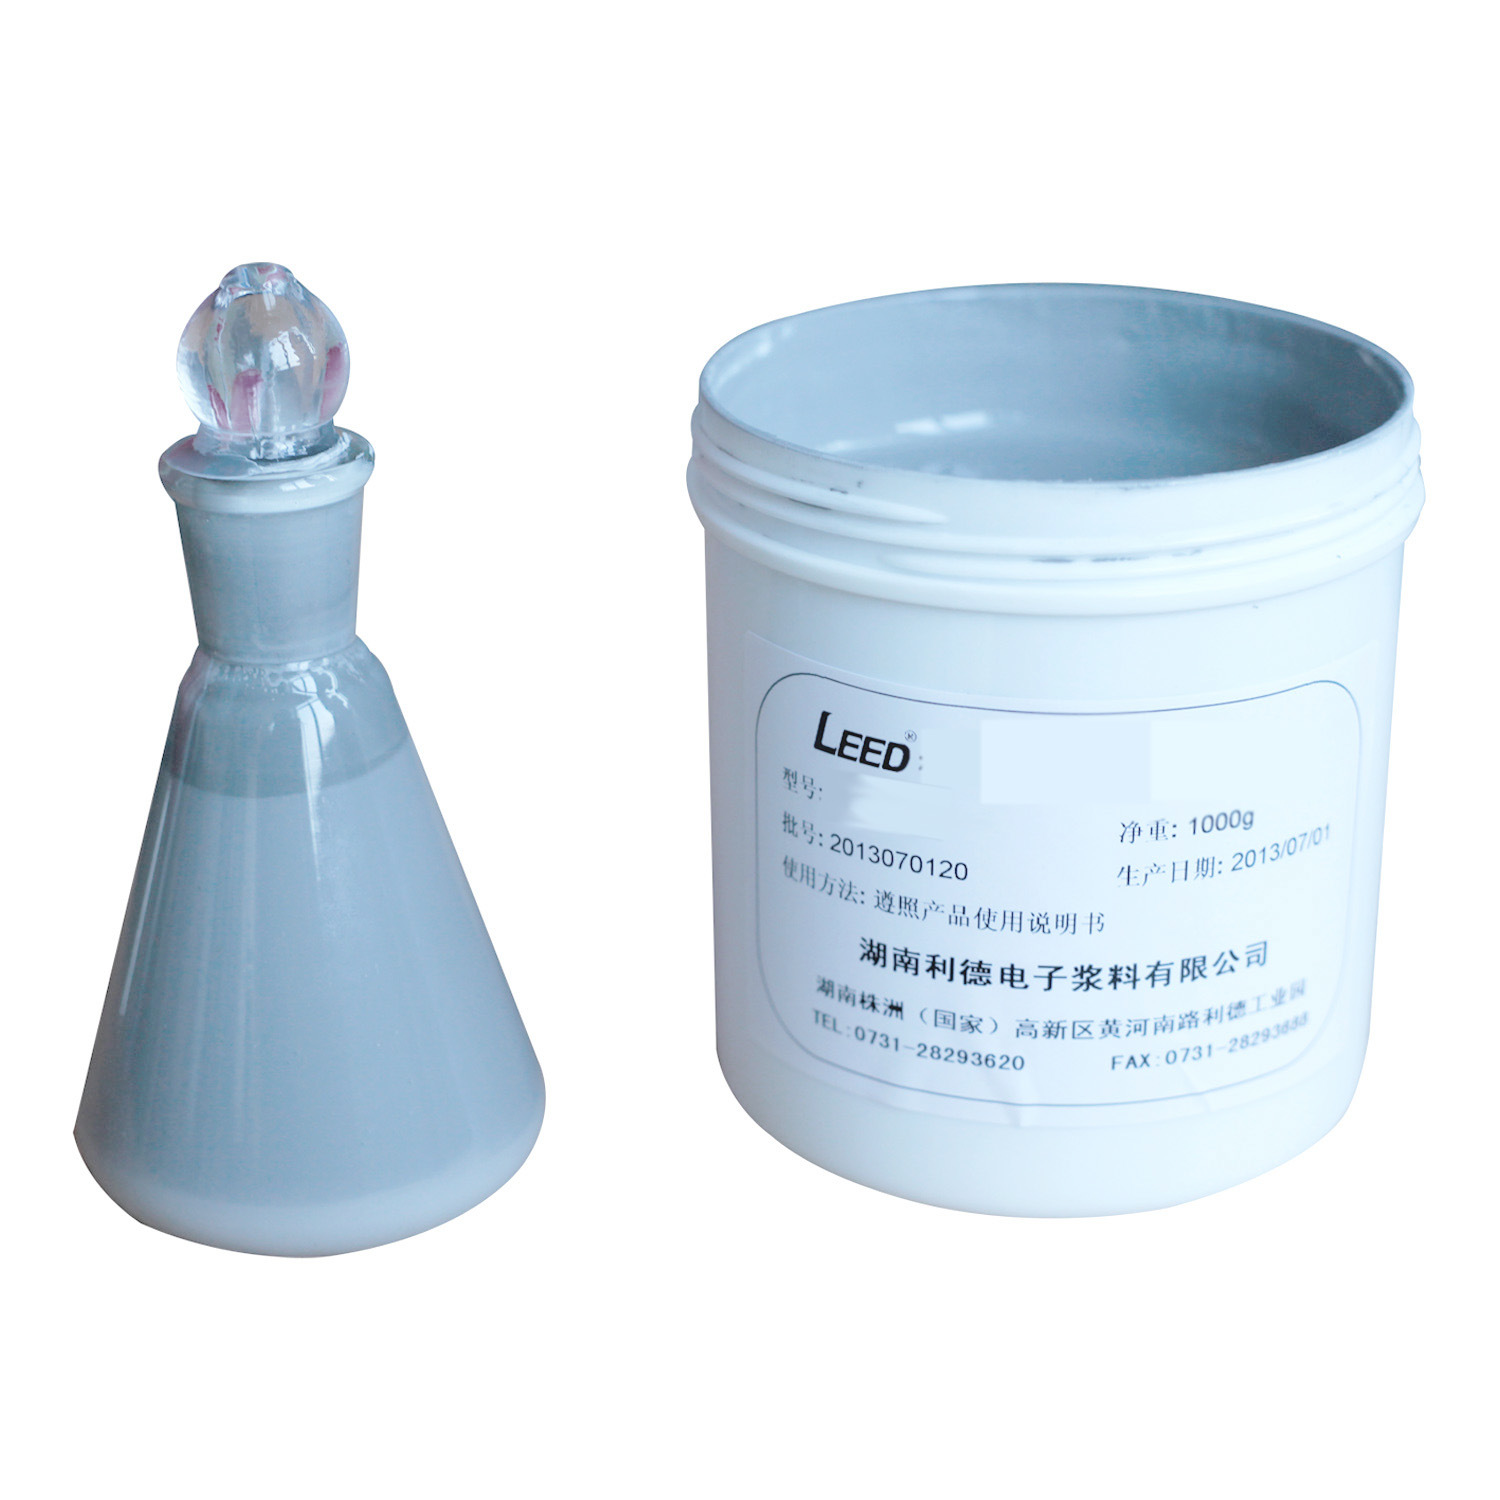 Stainless Steel Paste (Dielectric/Resistor/Conductor)